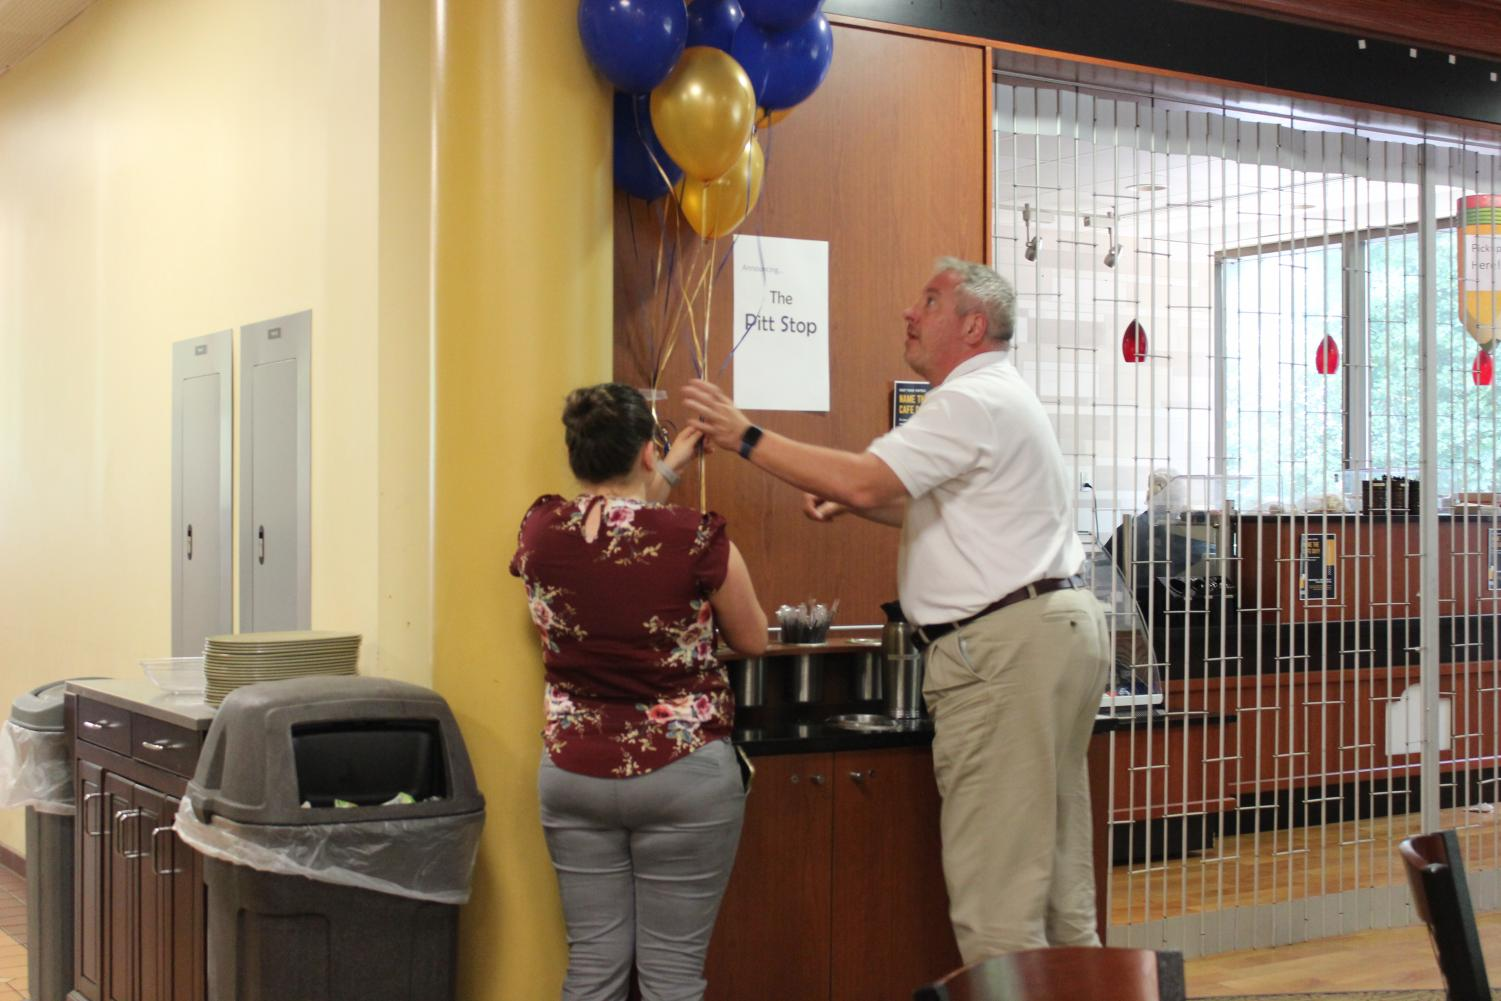 Sodexo Unit Marketing Coordinator Emily Cairns (left) and Dining Services Director Bob Knipple (right) arrange balloons next to a sign announcing the new café's name, the Pitt Stop.